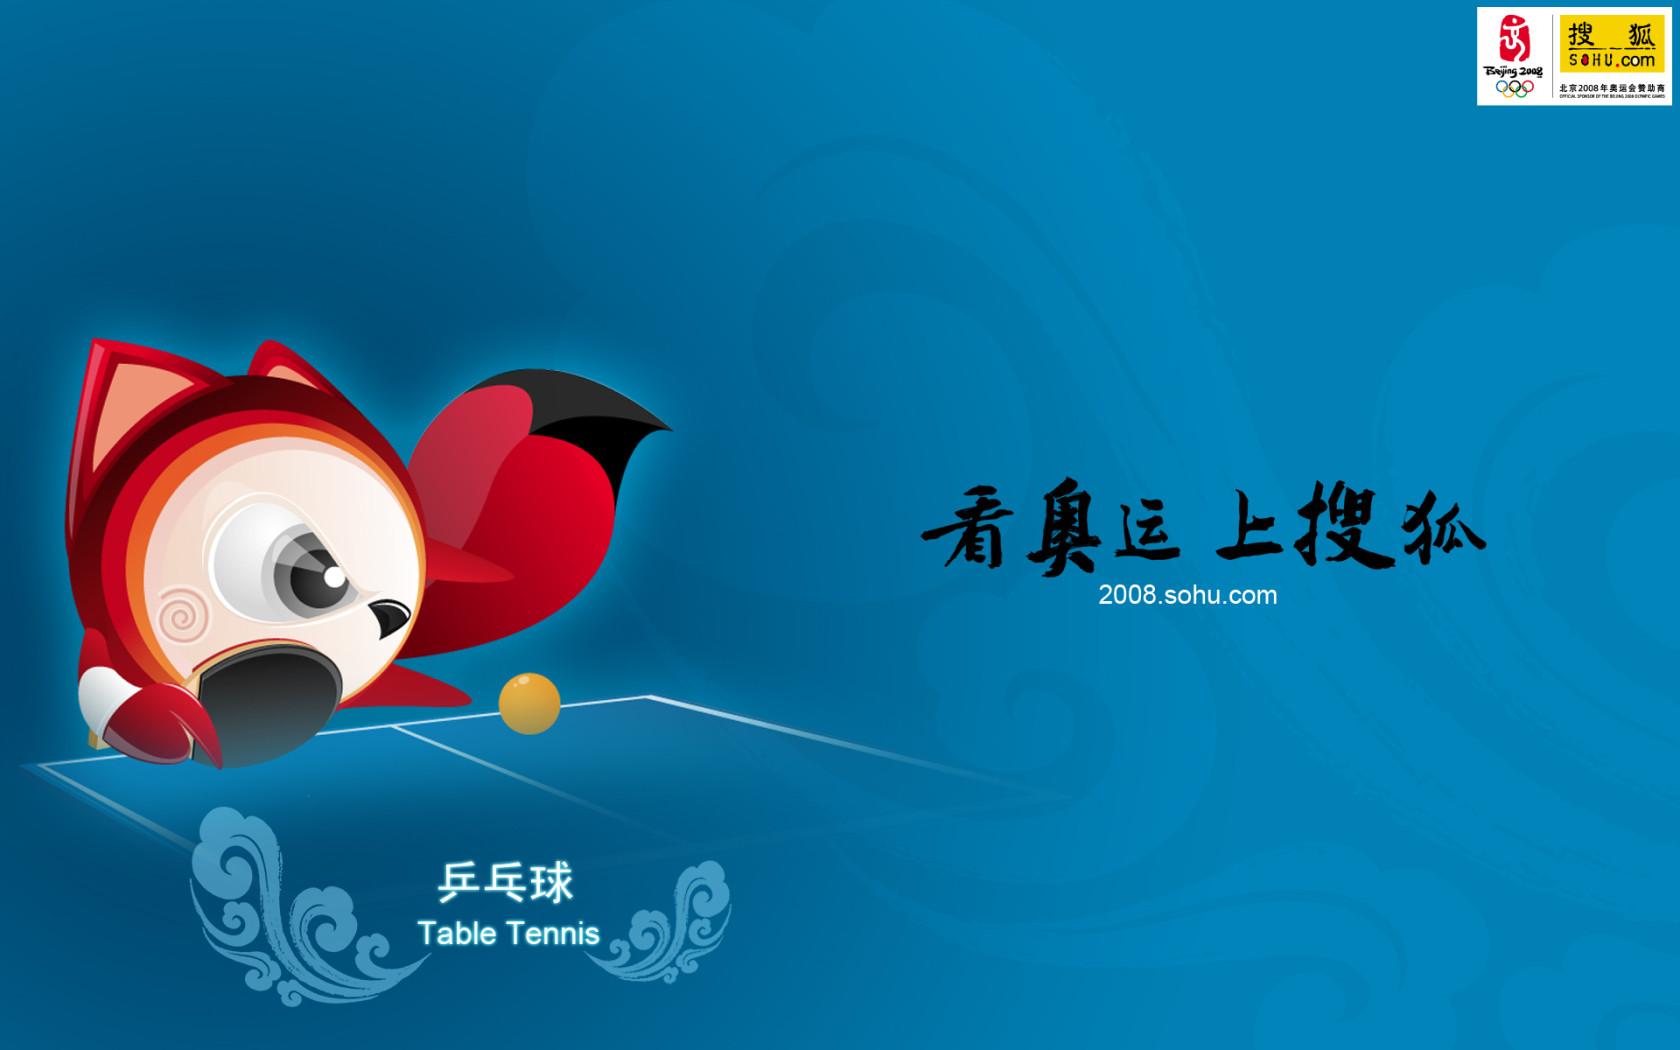 Table Tennis Olympics 2008 Desktop wallpapers 1680x1050 1680x1050